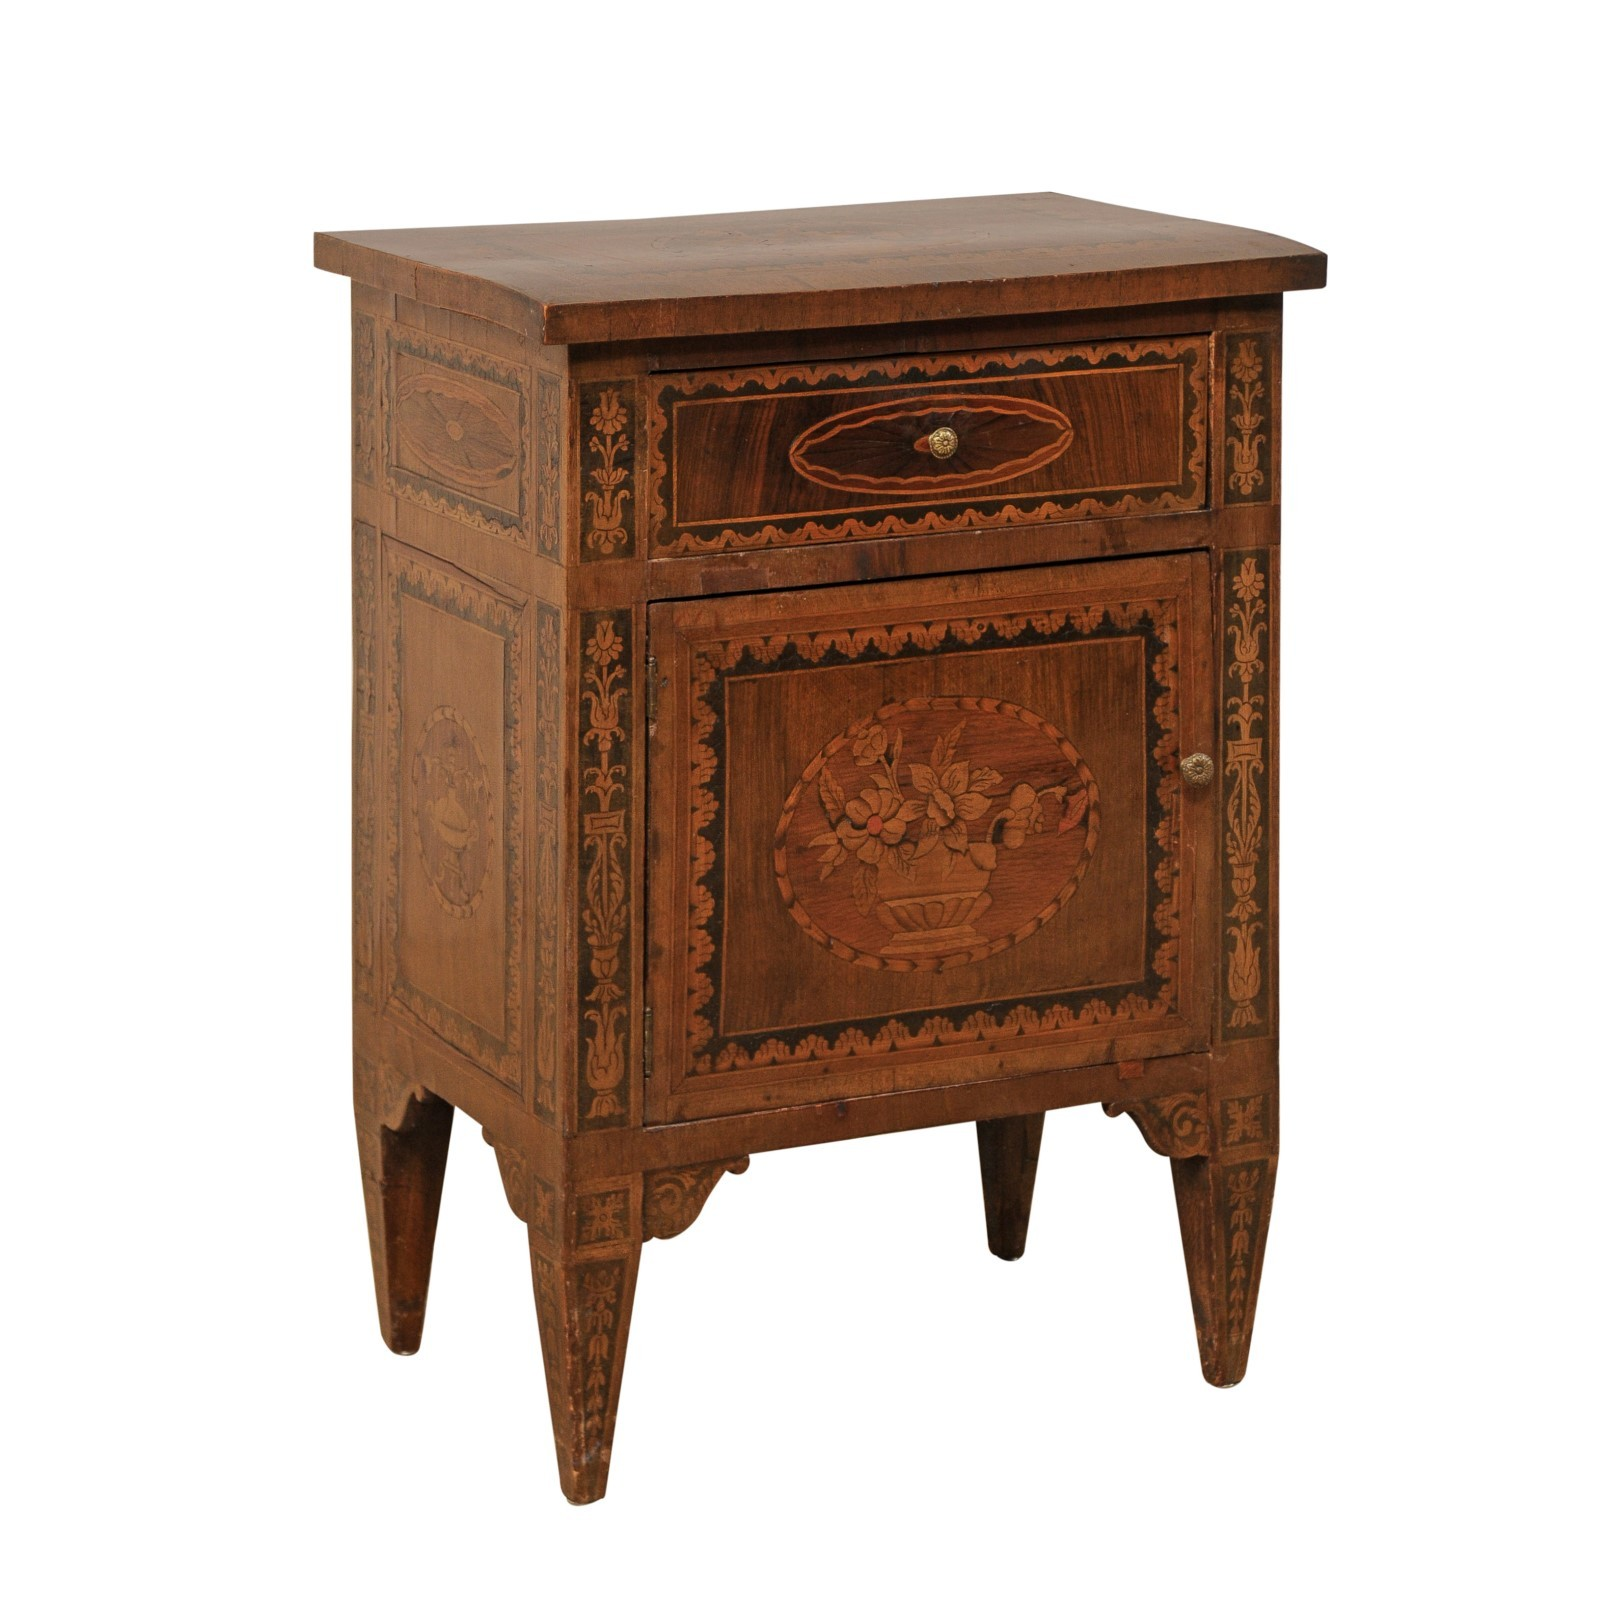 Italian Petite Commode w/Lovely Marquetry